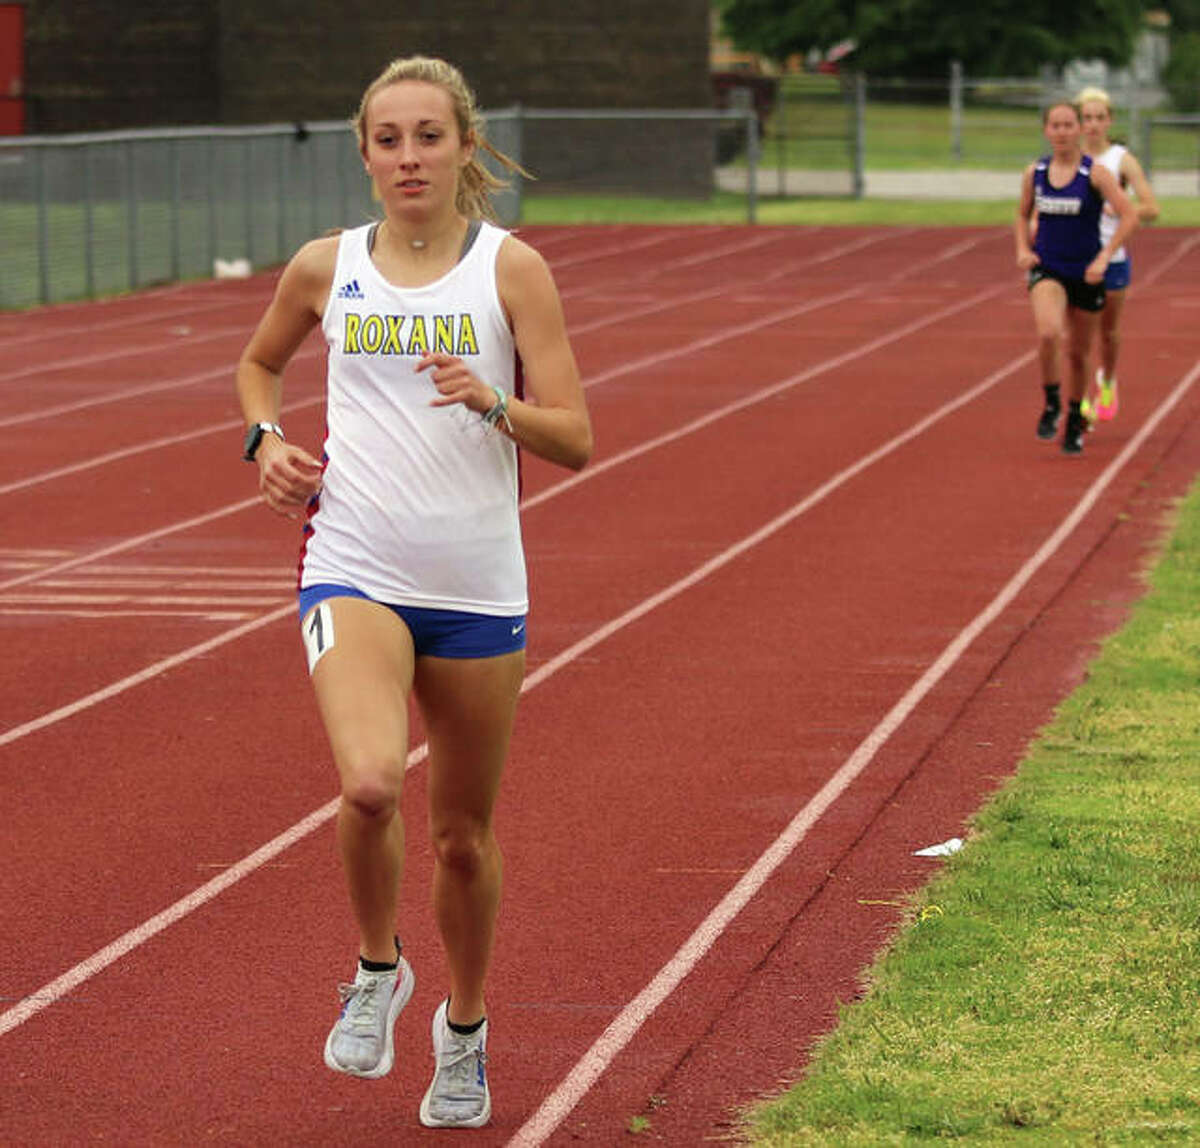 Roxana's Janelynn Wirth (left), shown winning the 1,600 meters at the Madison County Meet on May 17 in Wood River, won the 1,600 and was second in the 3,200 on Thursday at the SCC Meet in Pana.